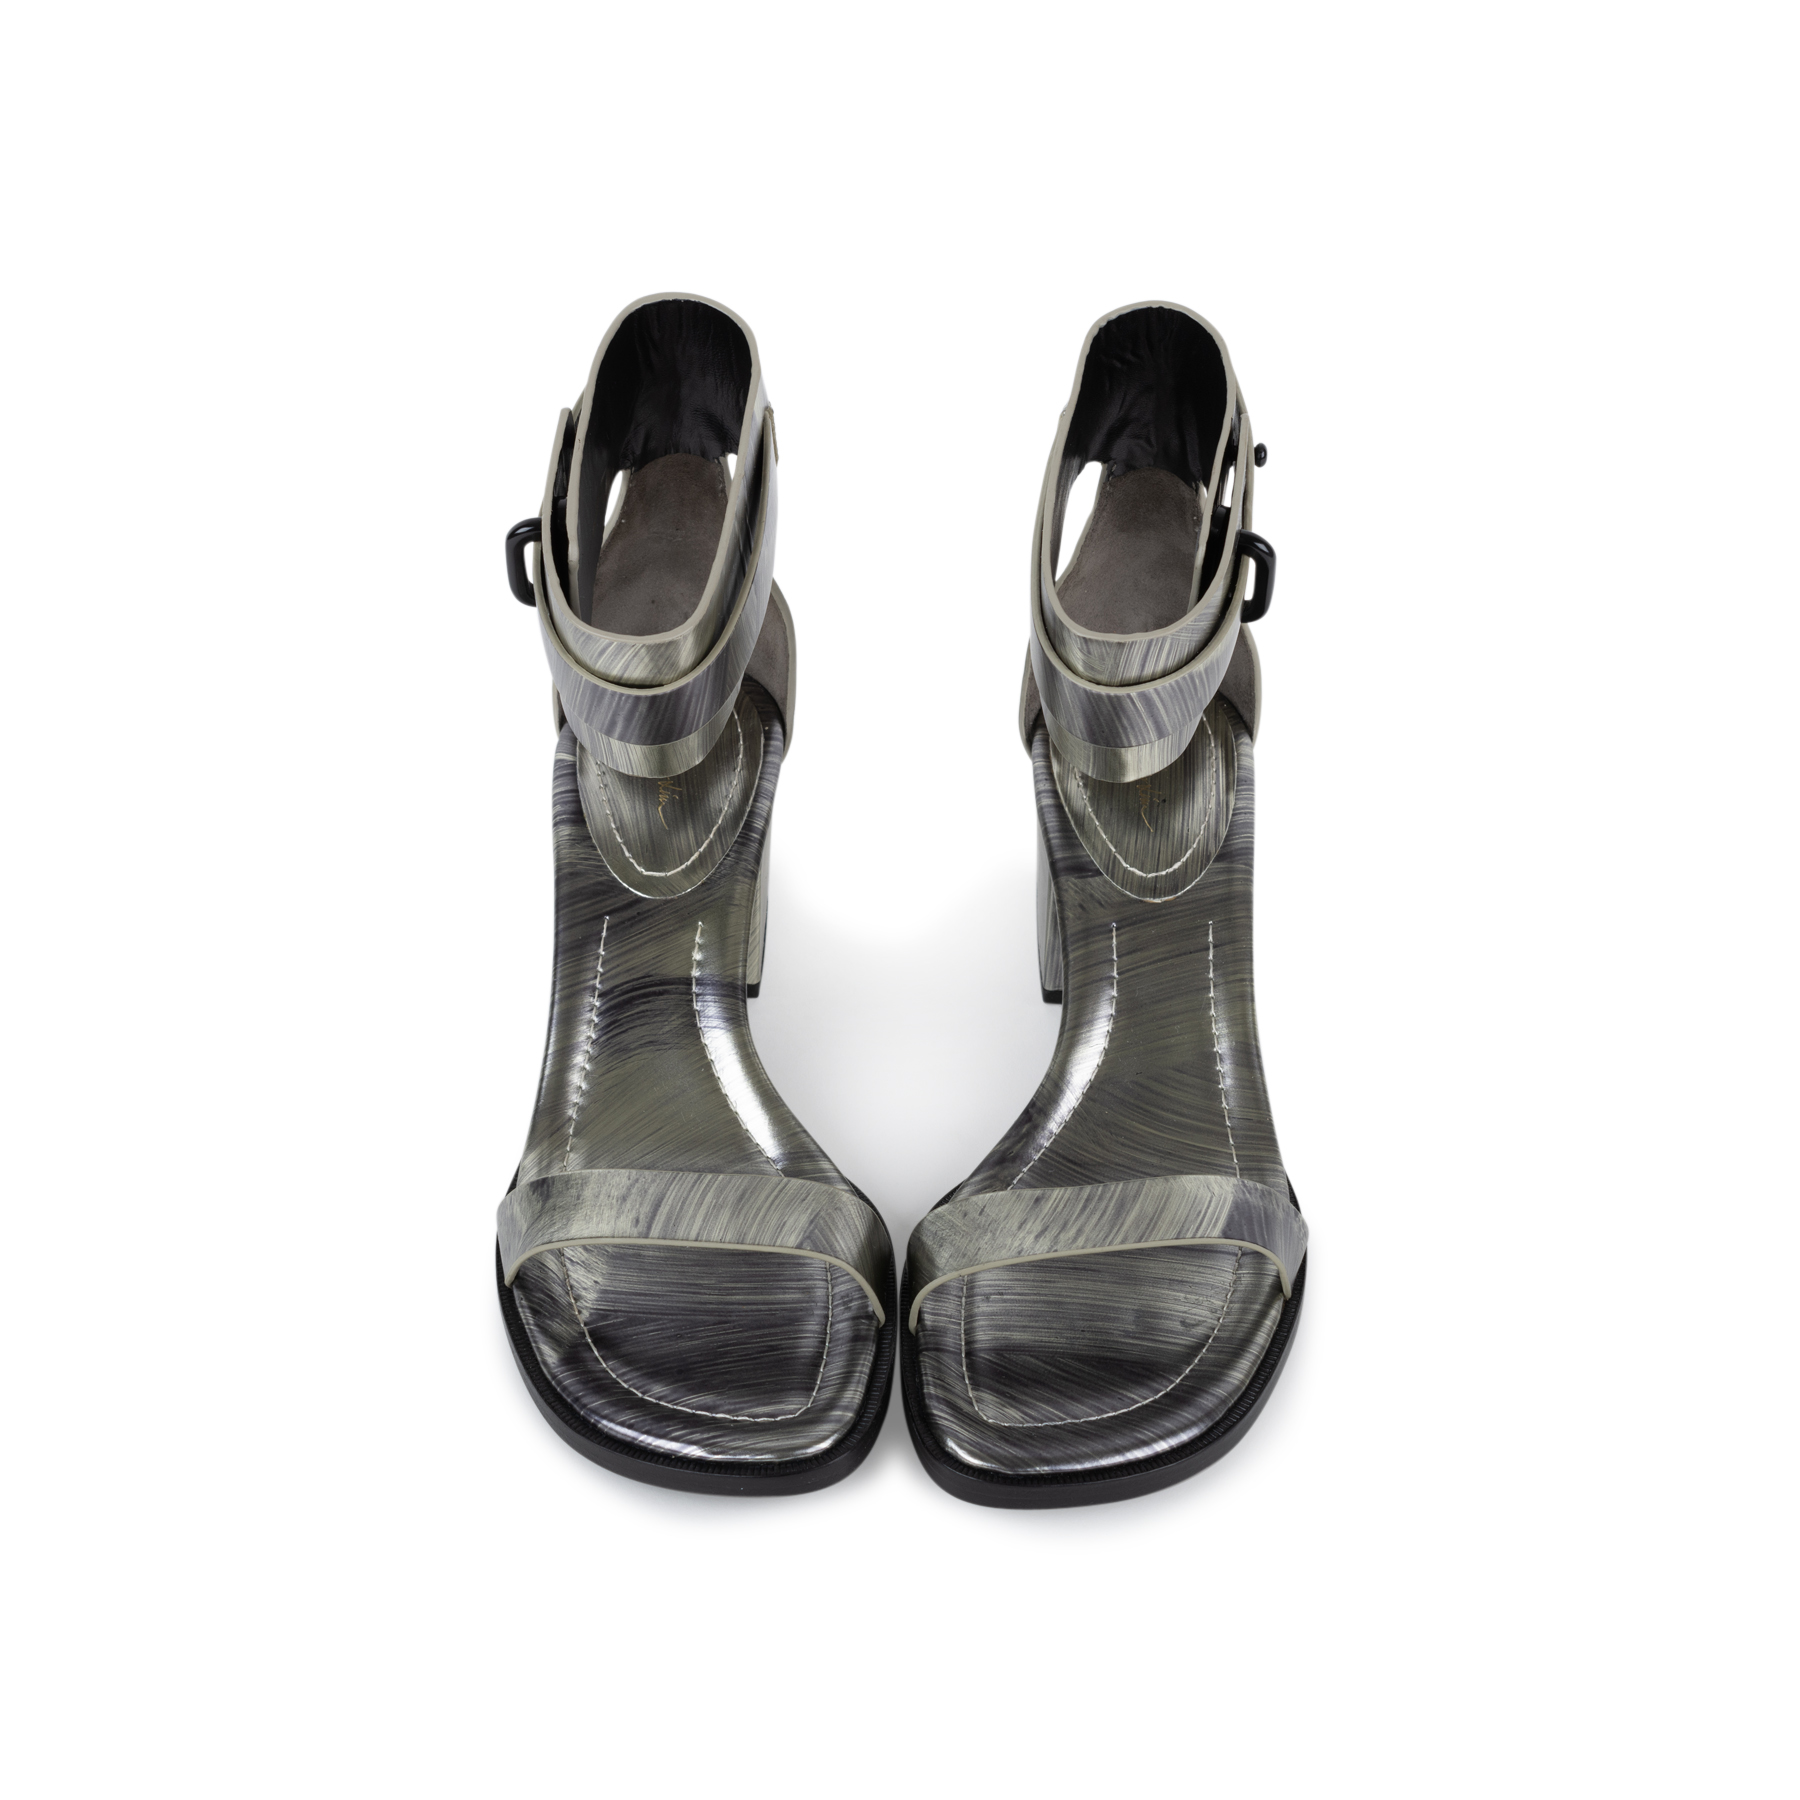 220d226a67c Authentic Second Hand 3.1 Phillip Lim Coco Metallic Mid-Heel Sandals  (PSS-569-00014)